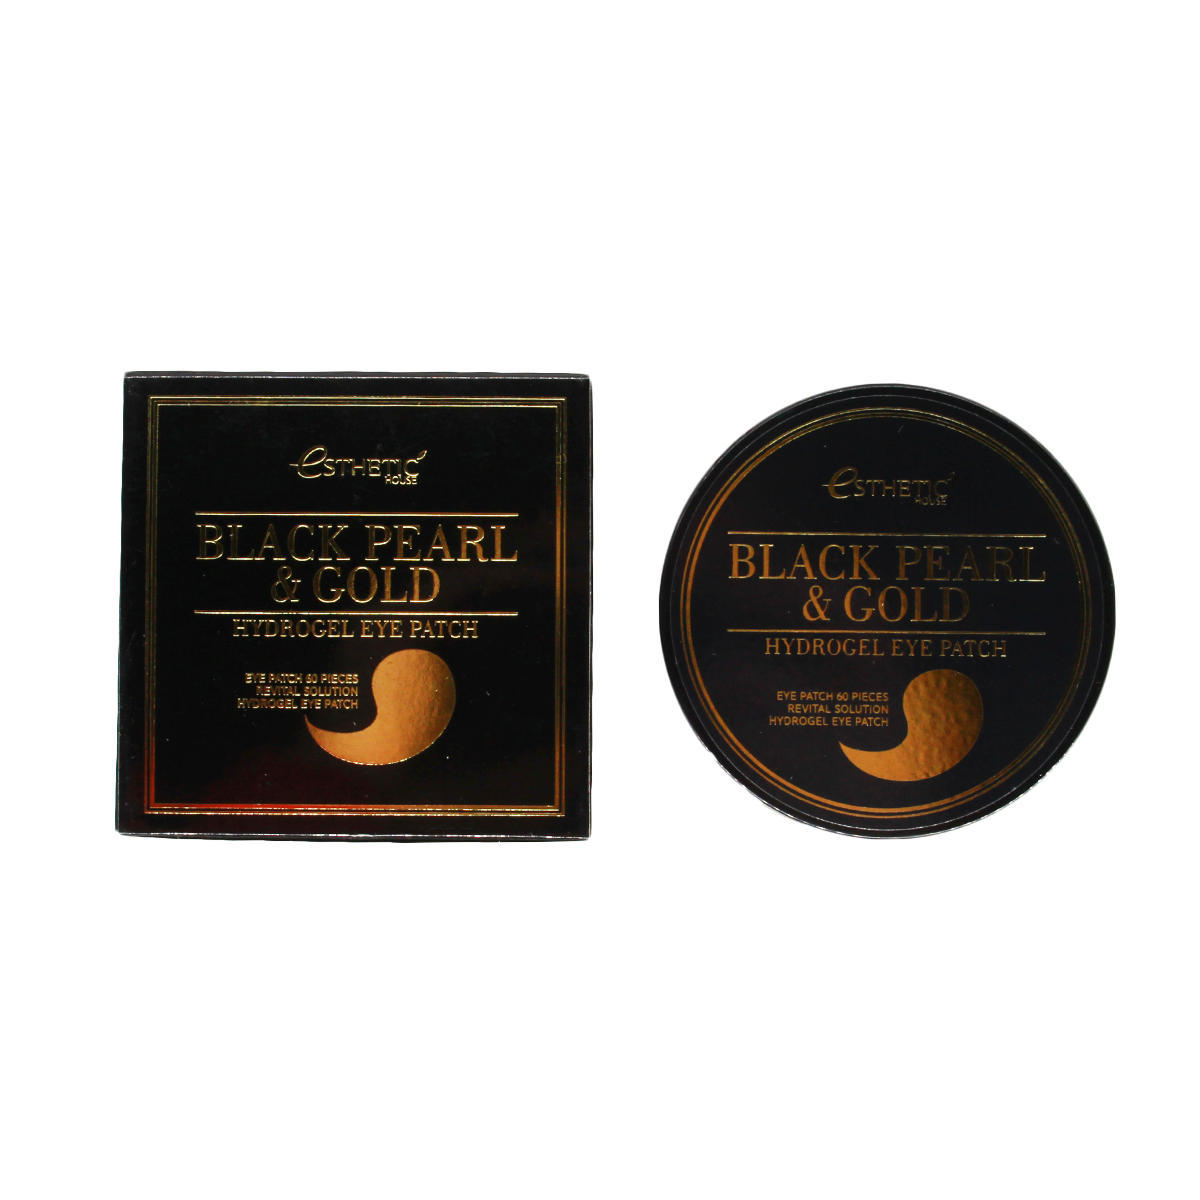 Патчи Патчи для глаз Esthetic House Black Pearl & Gold Hydrogel Eye Patch, 60 шт import_files_ce_ced515755b1c11e980fb3408042974b1_ced515765b1c11e980fb3408042974b1.jpg